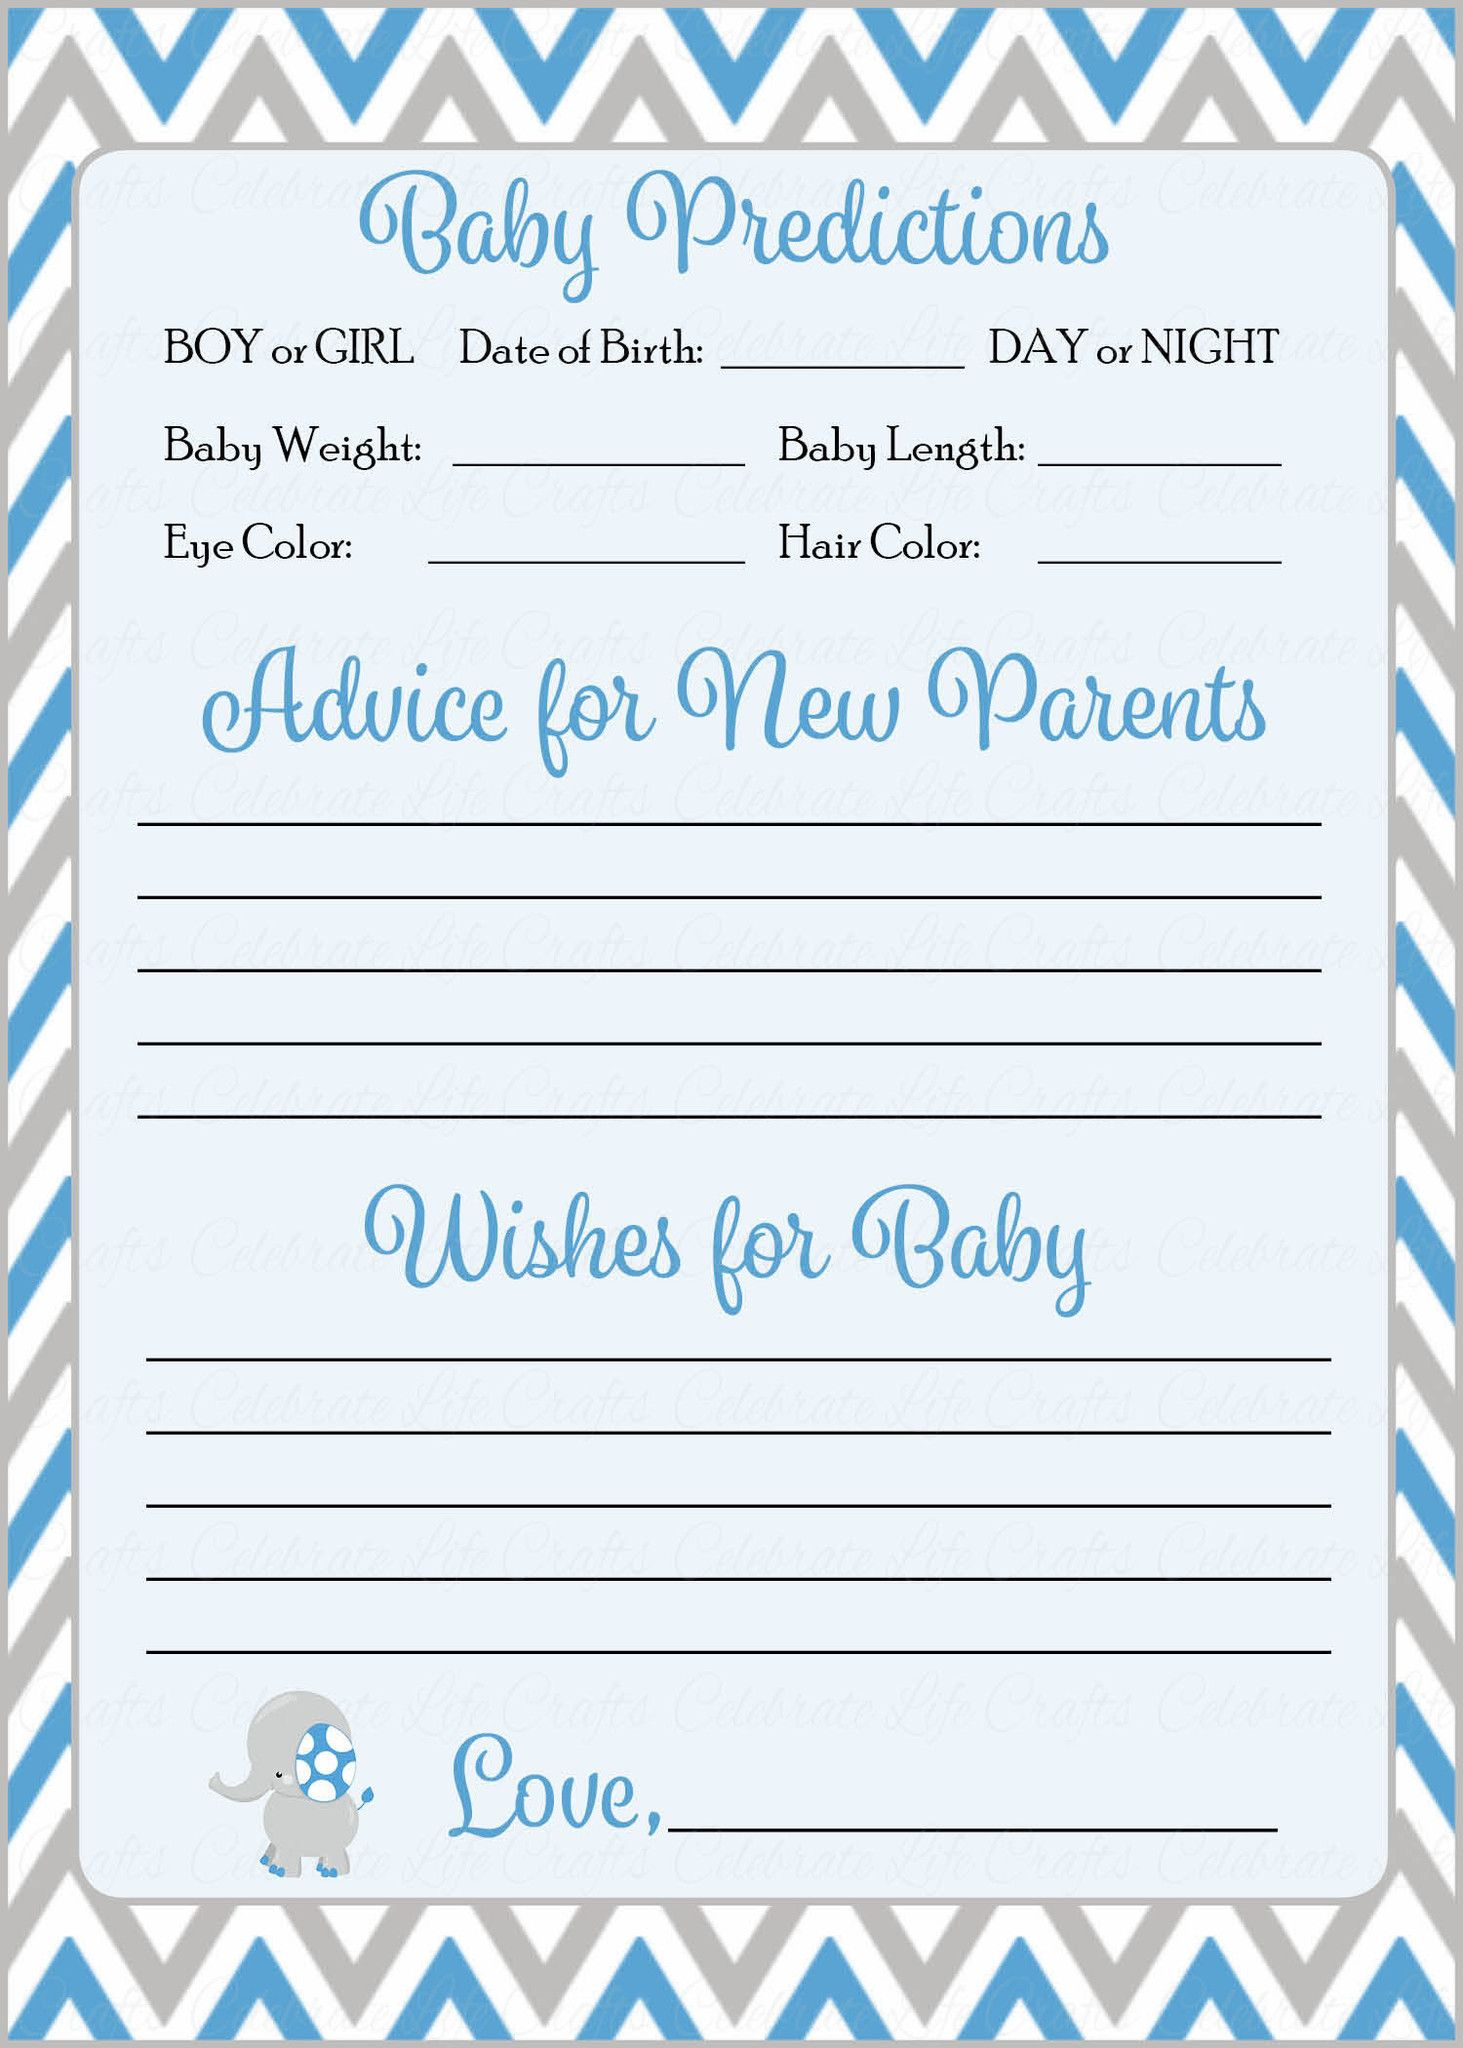 Baby Shower Advice Cards : shower, advice, cards, Prediction, Advice, Cards, Printable, Download, Shower, Activity, B3004, Advice,, Printables,, Games